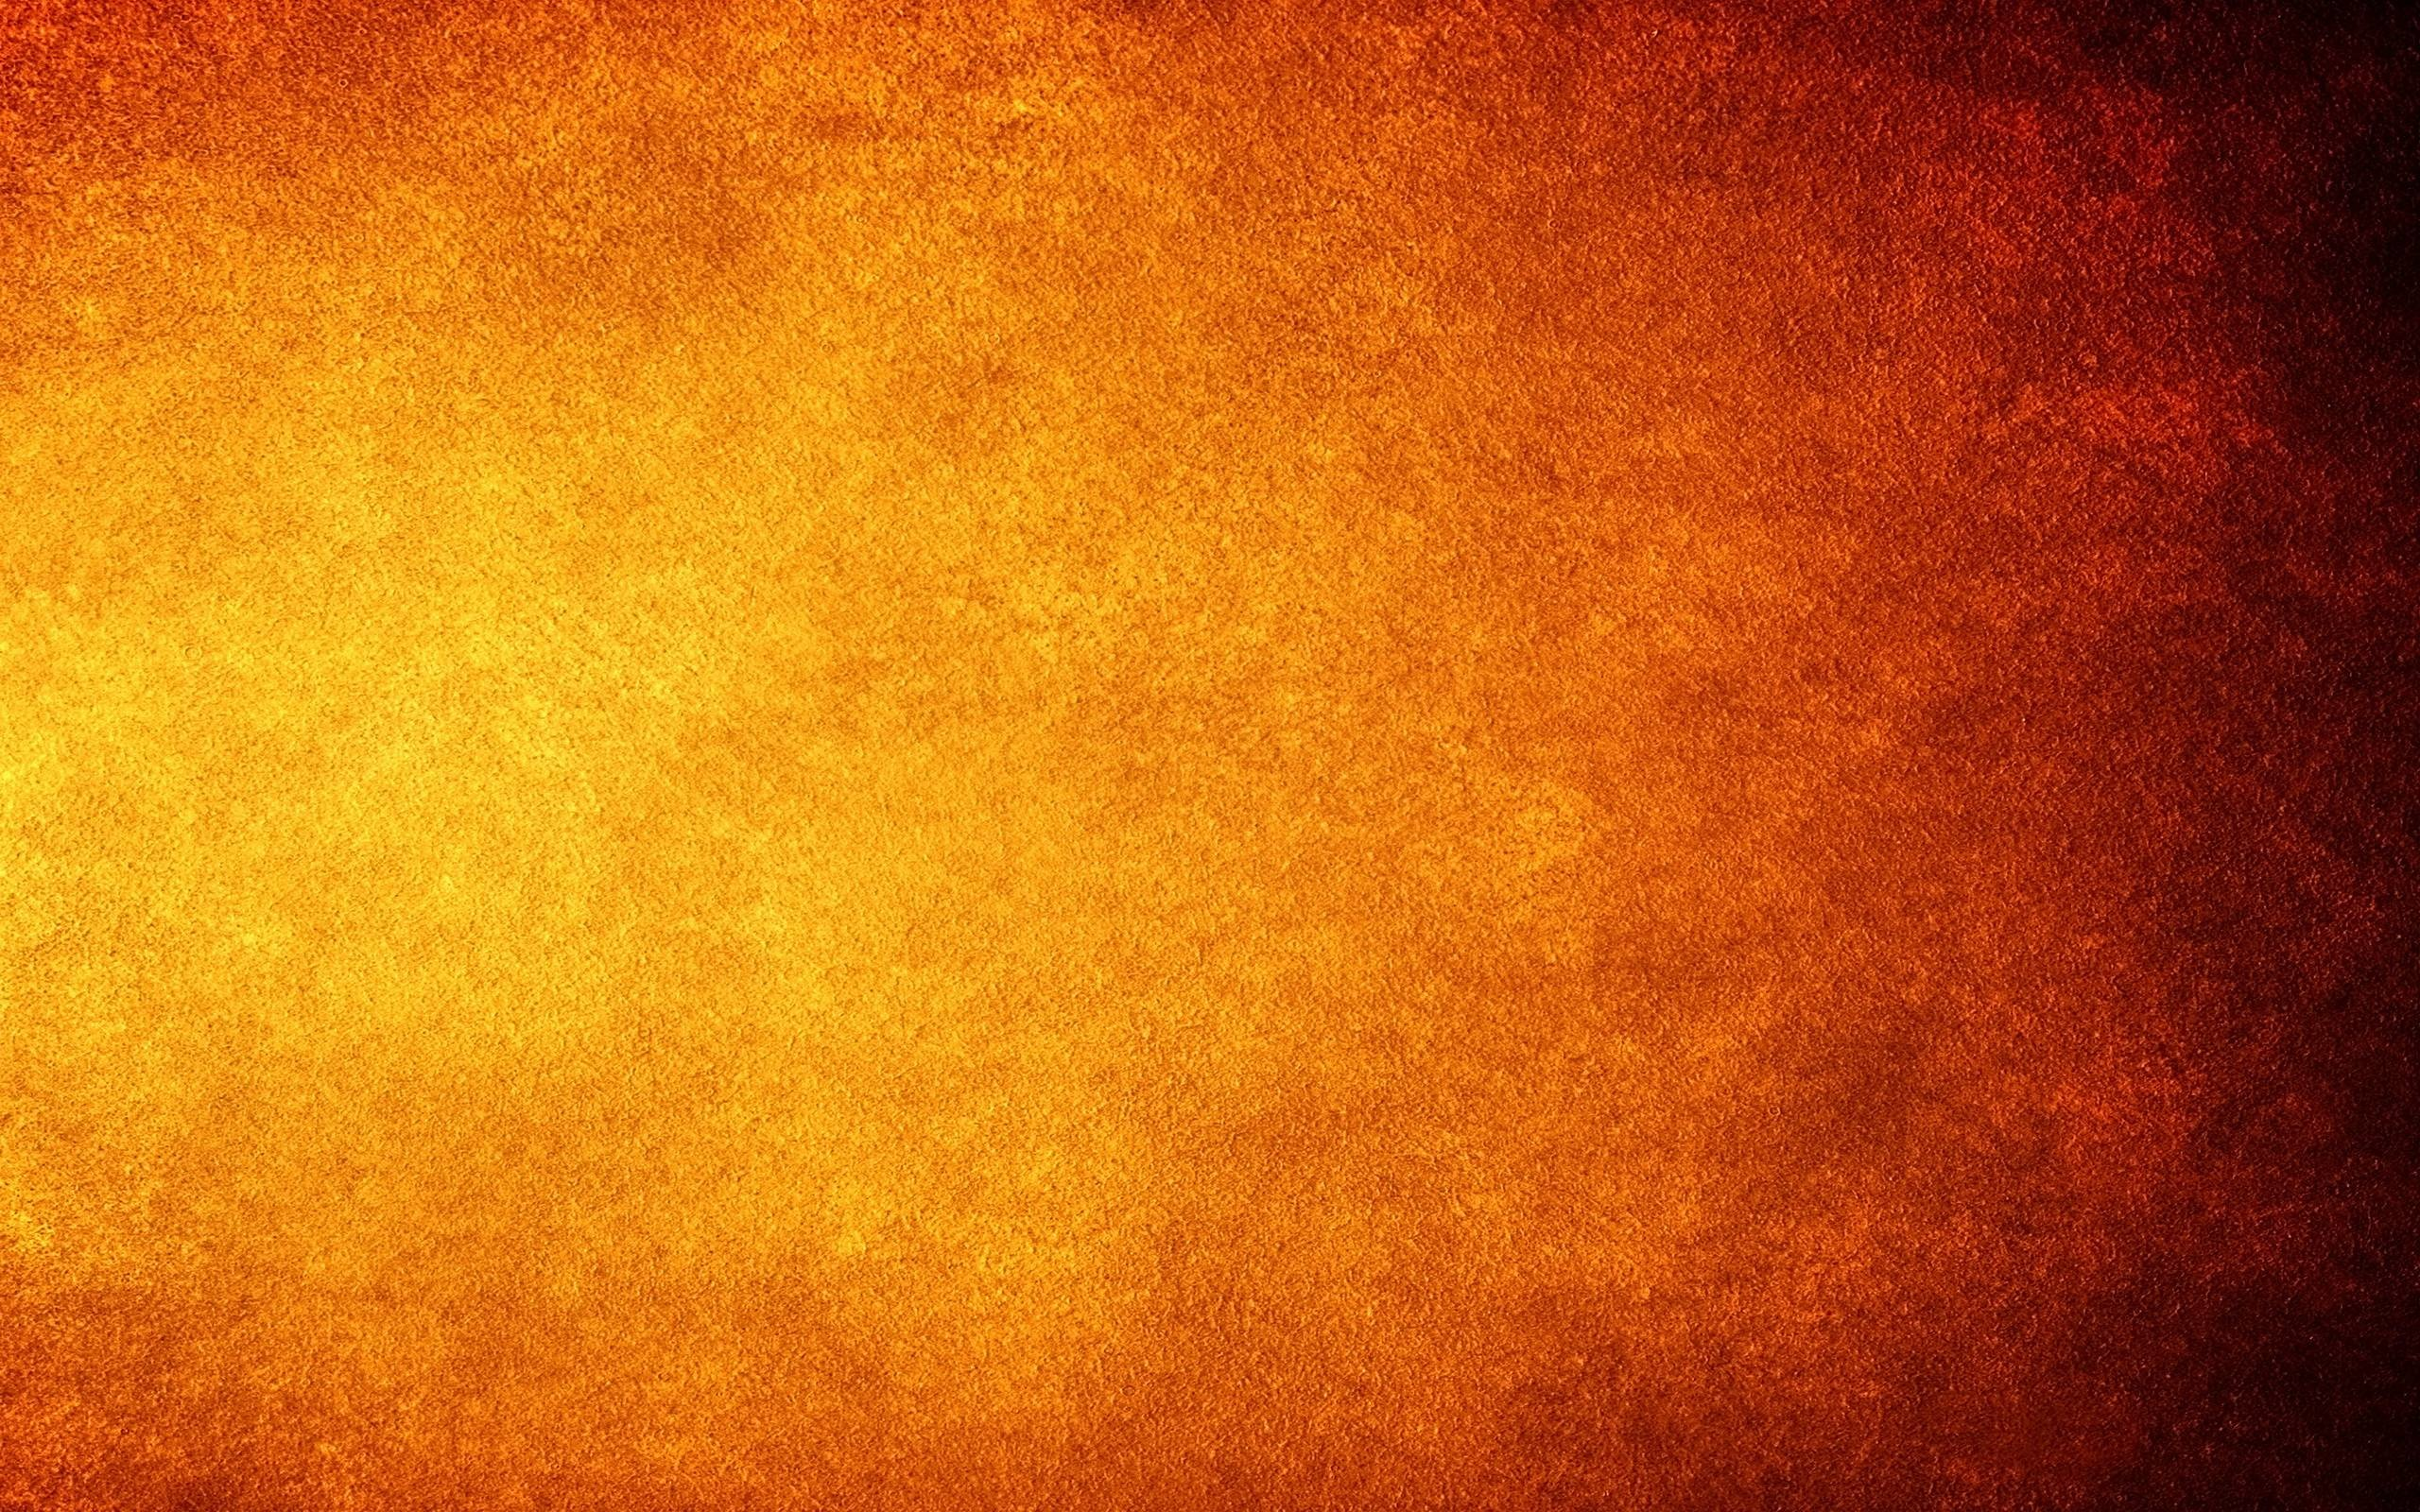 Cool Orange Backgrounds the best 47 images in 2018 2560x1600